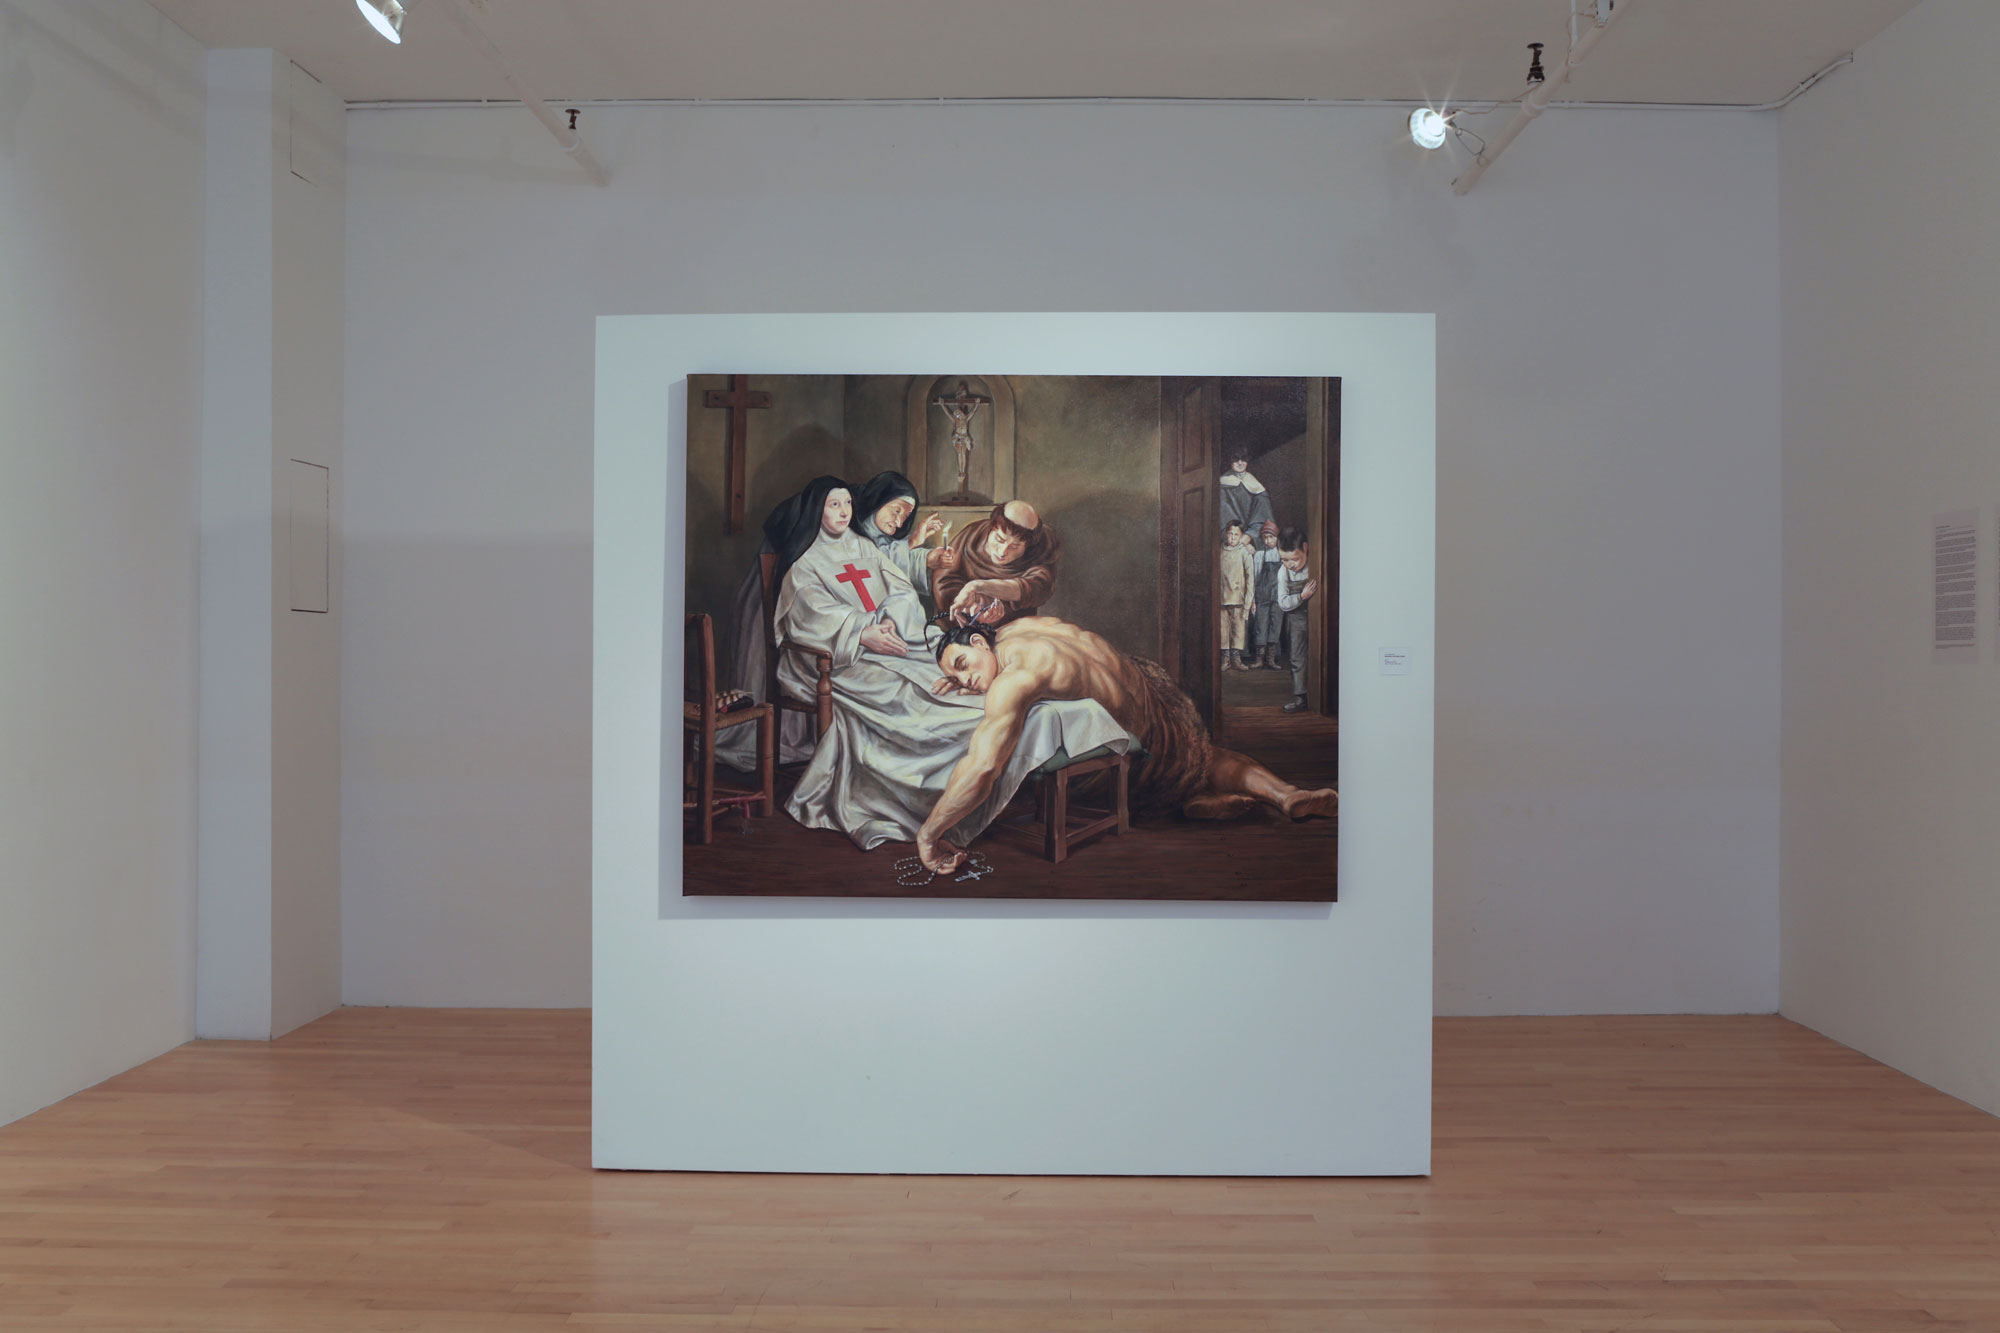 No Homo: Art, Assistants and Emulation at pfoac221, Curated by Kent Monkman.